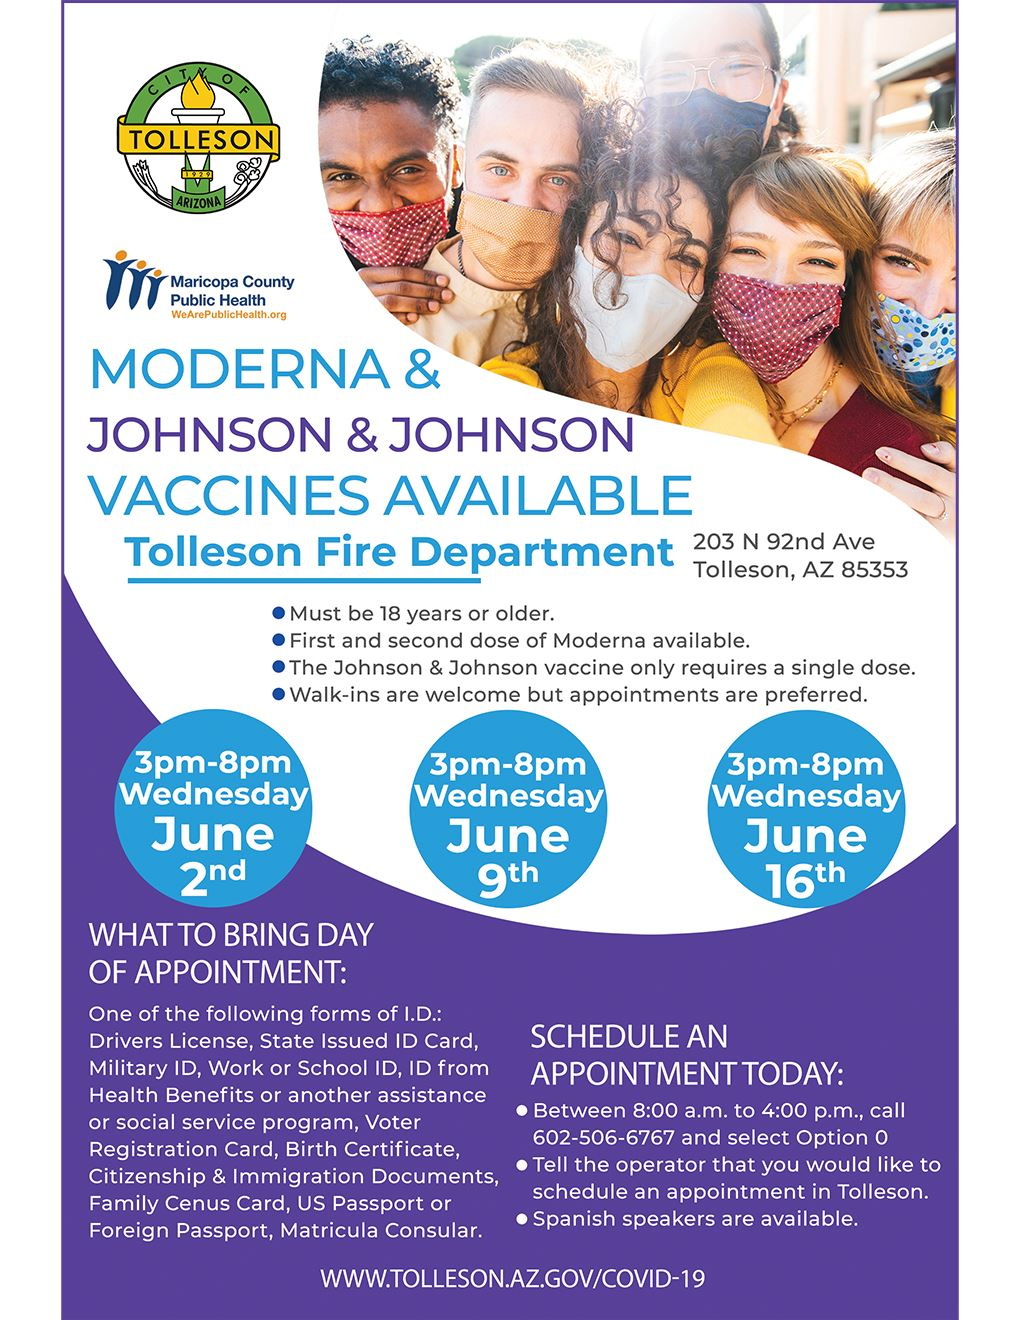 Moderna and Johnson & Johnson Vaccines in Tolleson